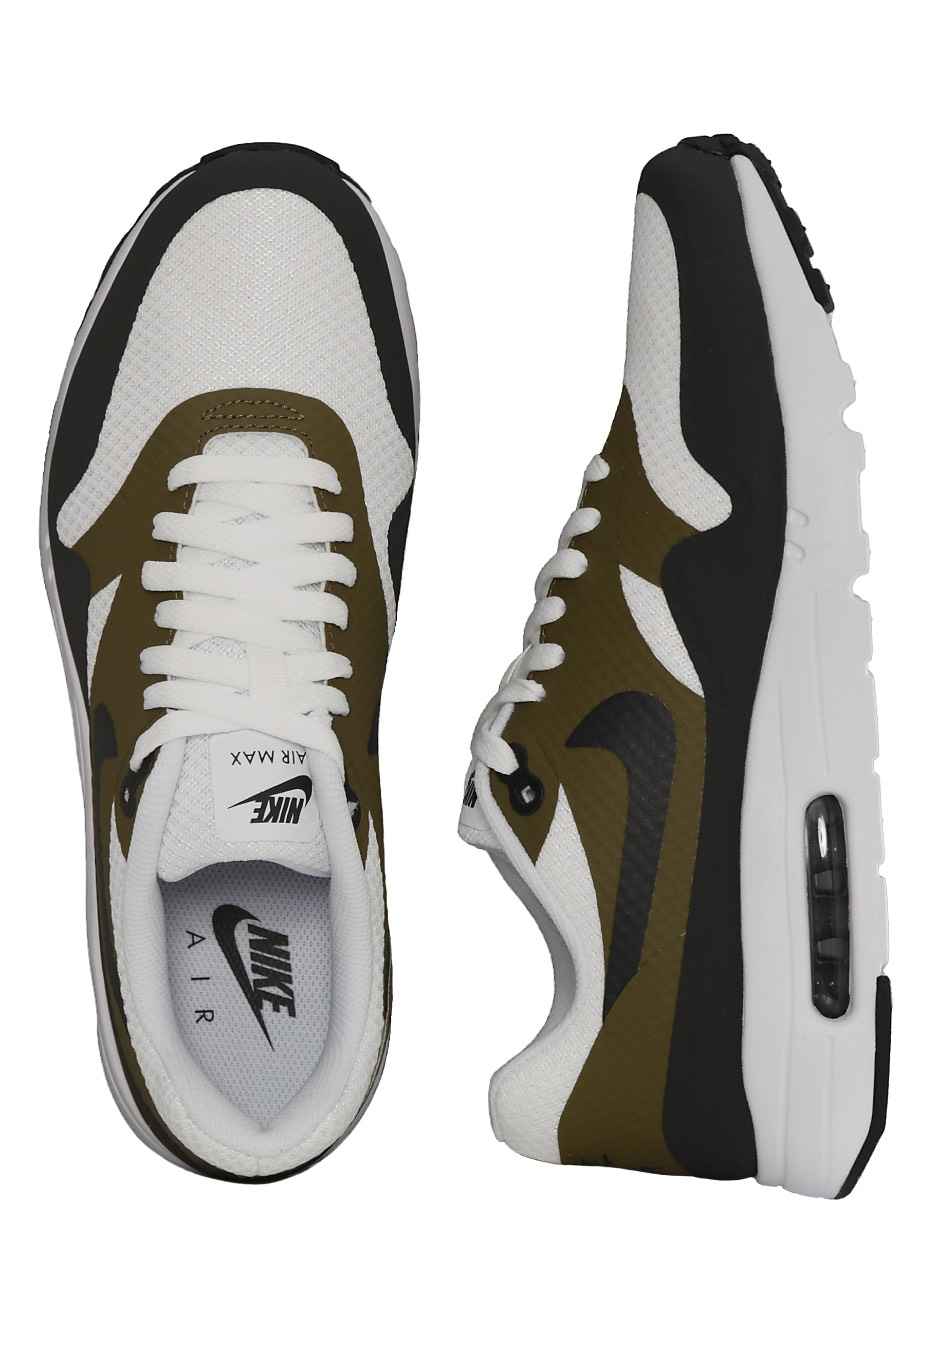 best service 025c8 62b93 Nike - Air Max 1 Ultra Essential WhiteAnthraciteOlive FlakWhite - Shoes  - Impericon.com UK